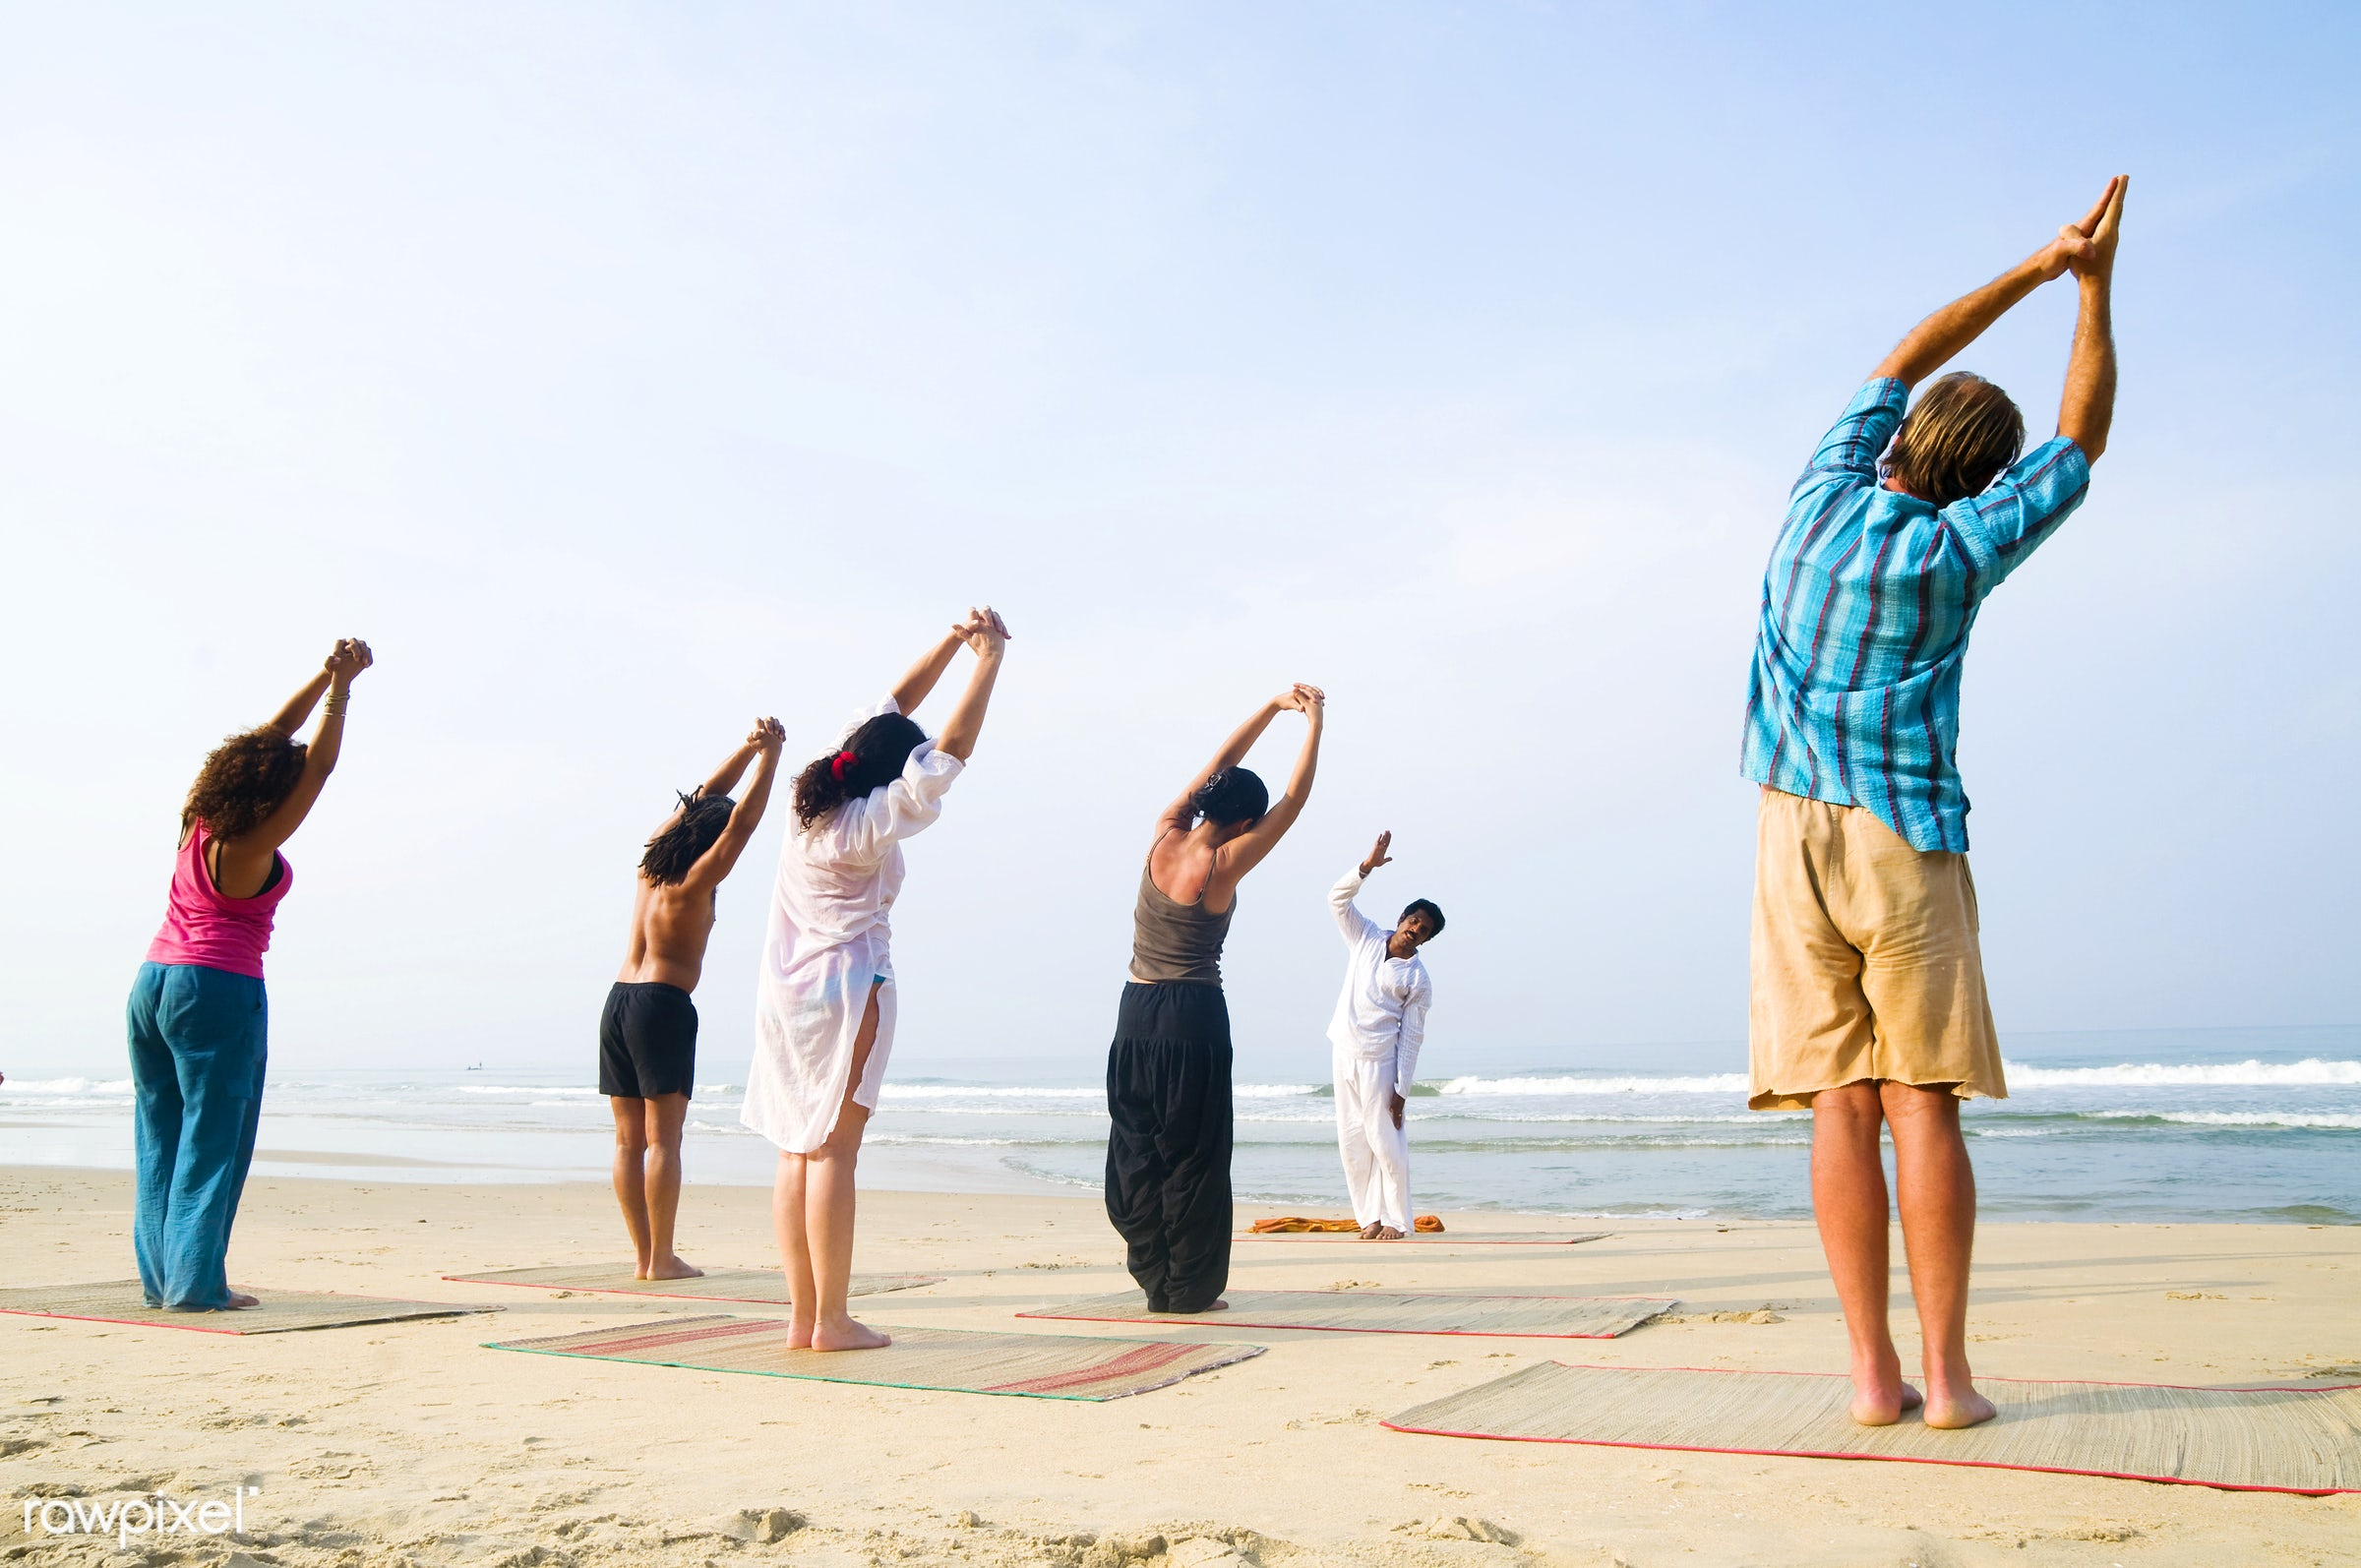 Yoga class at the beach - yoga, sea, wave, activity, adult, arms raised, beach, beauty in nature, body, body care, casual,...